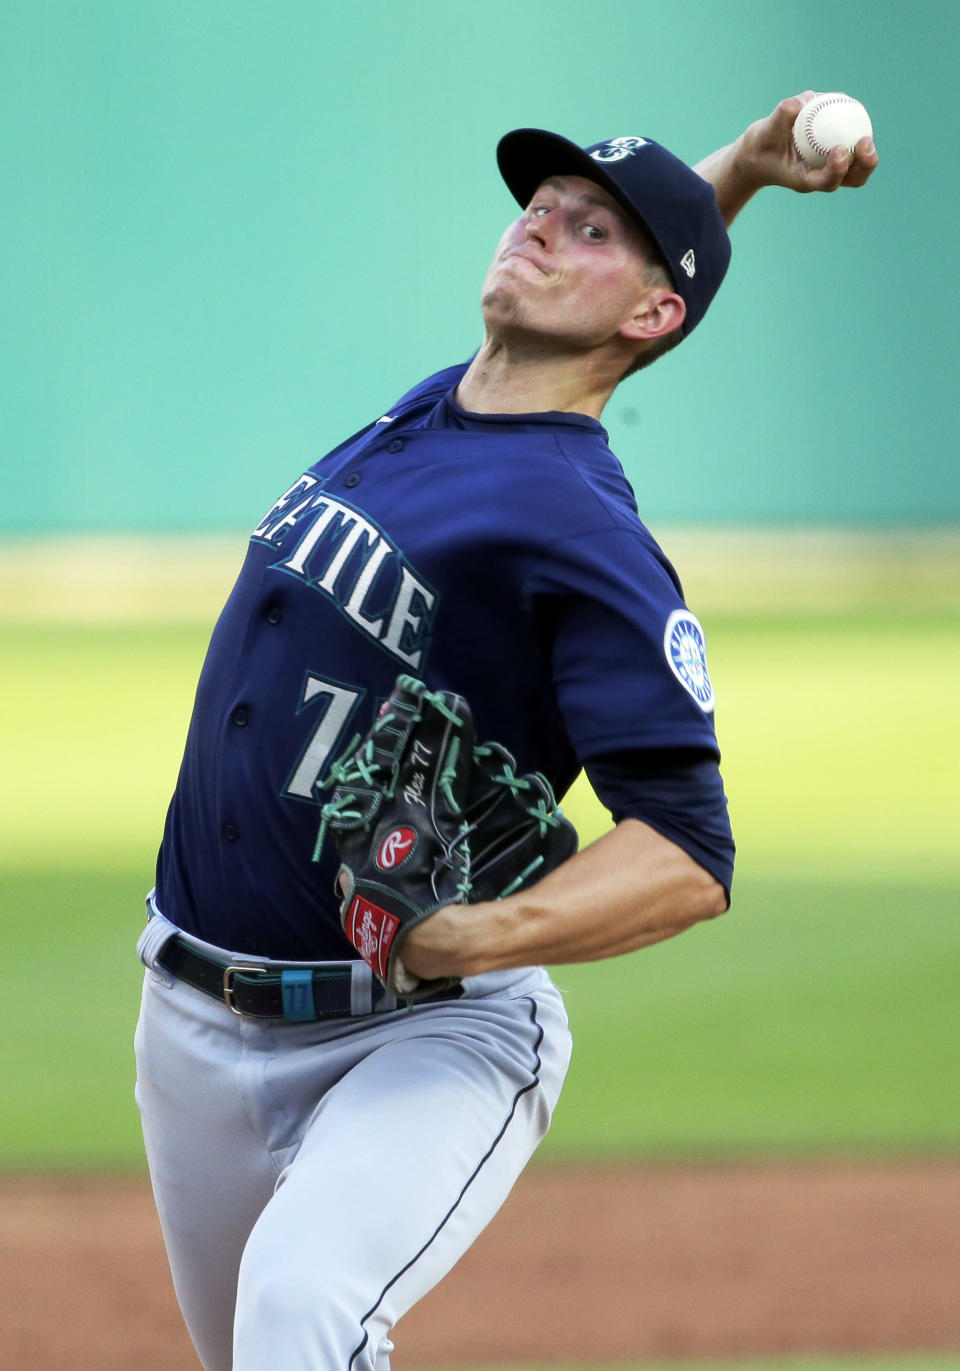 Seattle Mariners starter Chris Flexen delivers against the Detroit Tigers during the third inning of a baseball game Wednesday, June 9, 2021, in Detroit. (AP Photo/Duane Burleson)